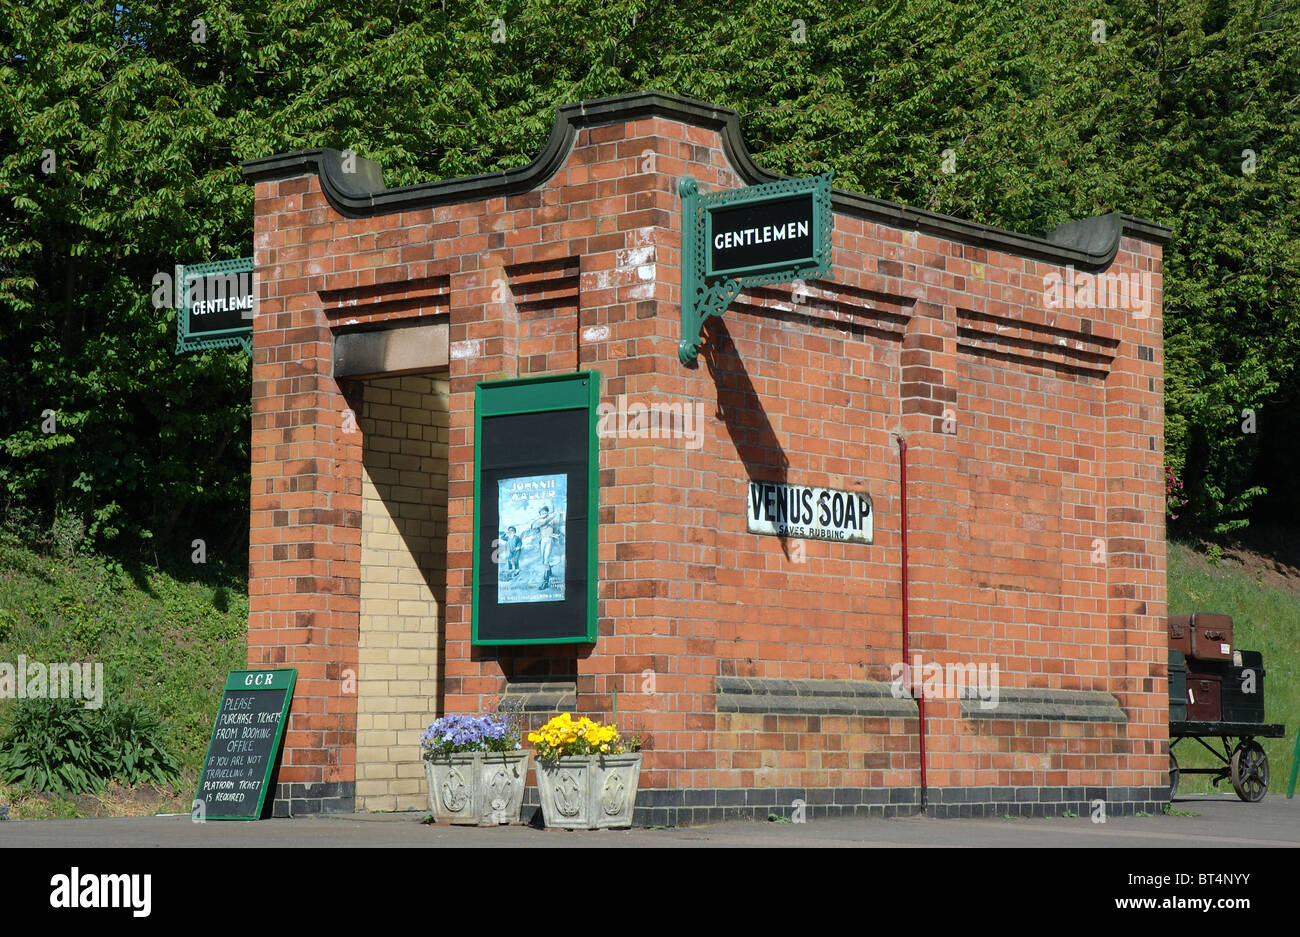 Gents toilets, Rothley station, Great Central Railway, Leicestershire, England, UK - Stock Image